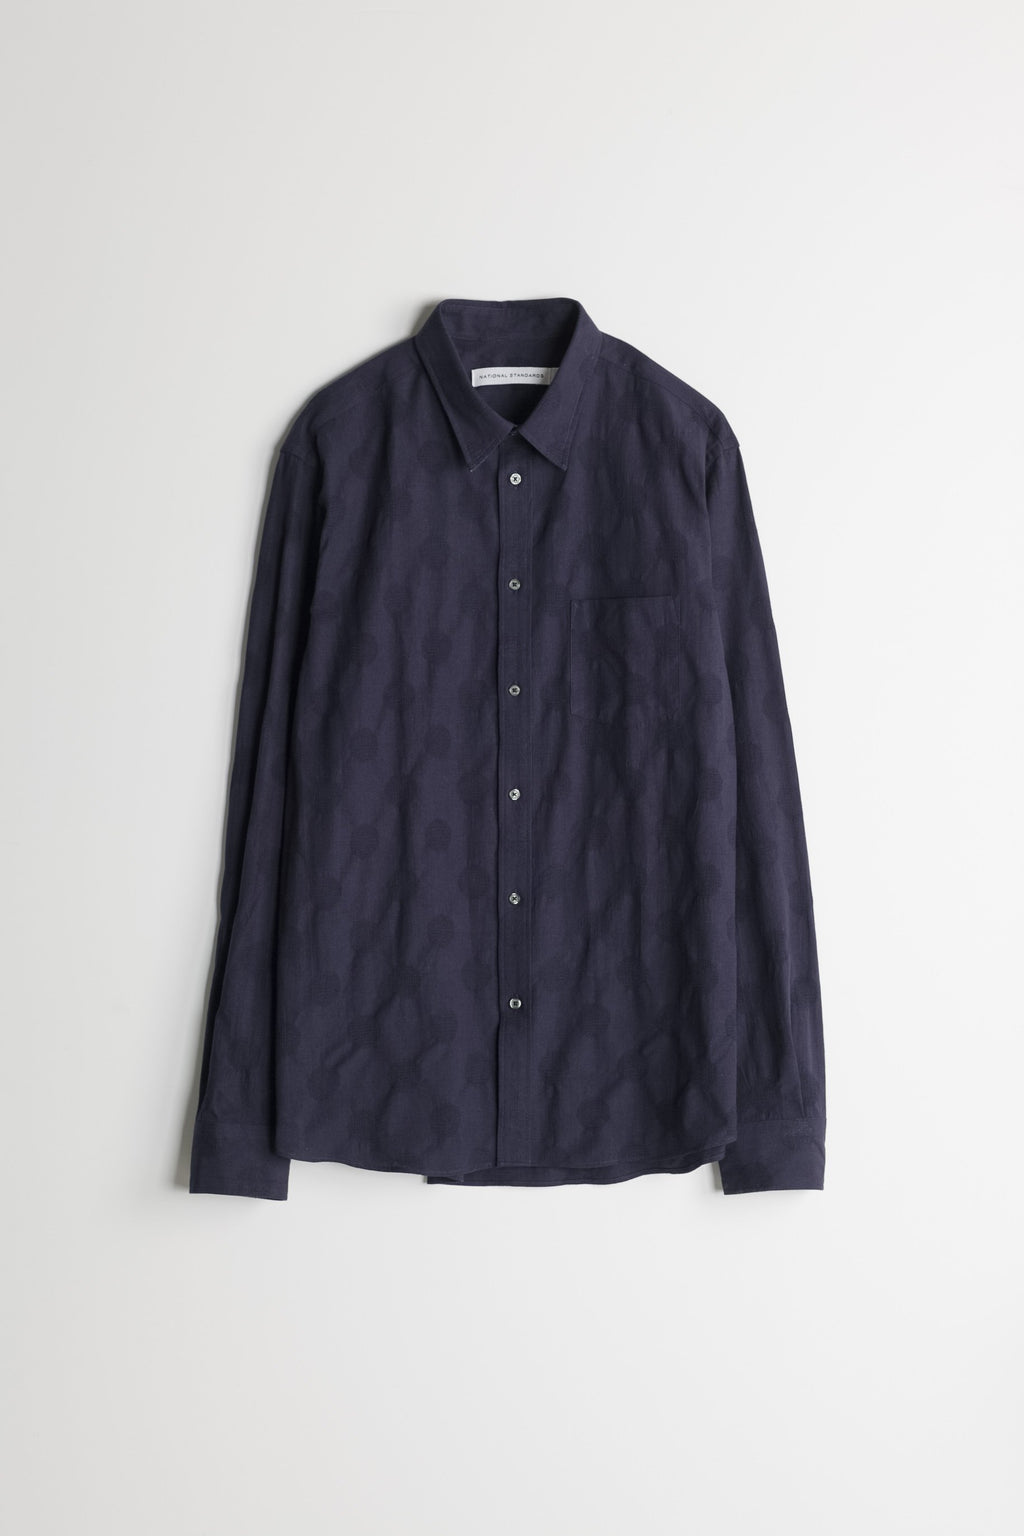 japanese-dobby-dot-in-navy 05